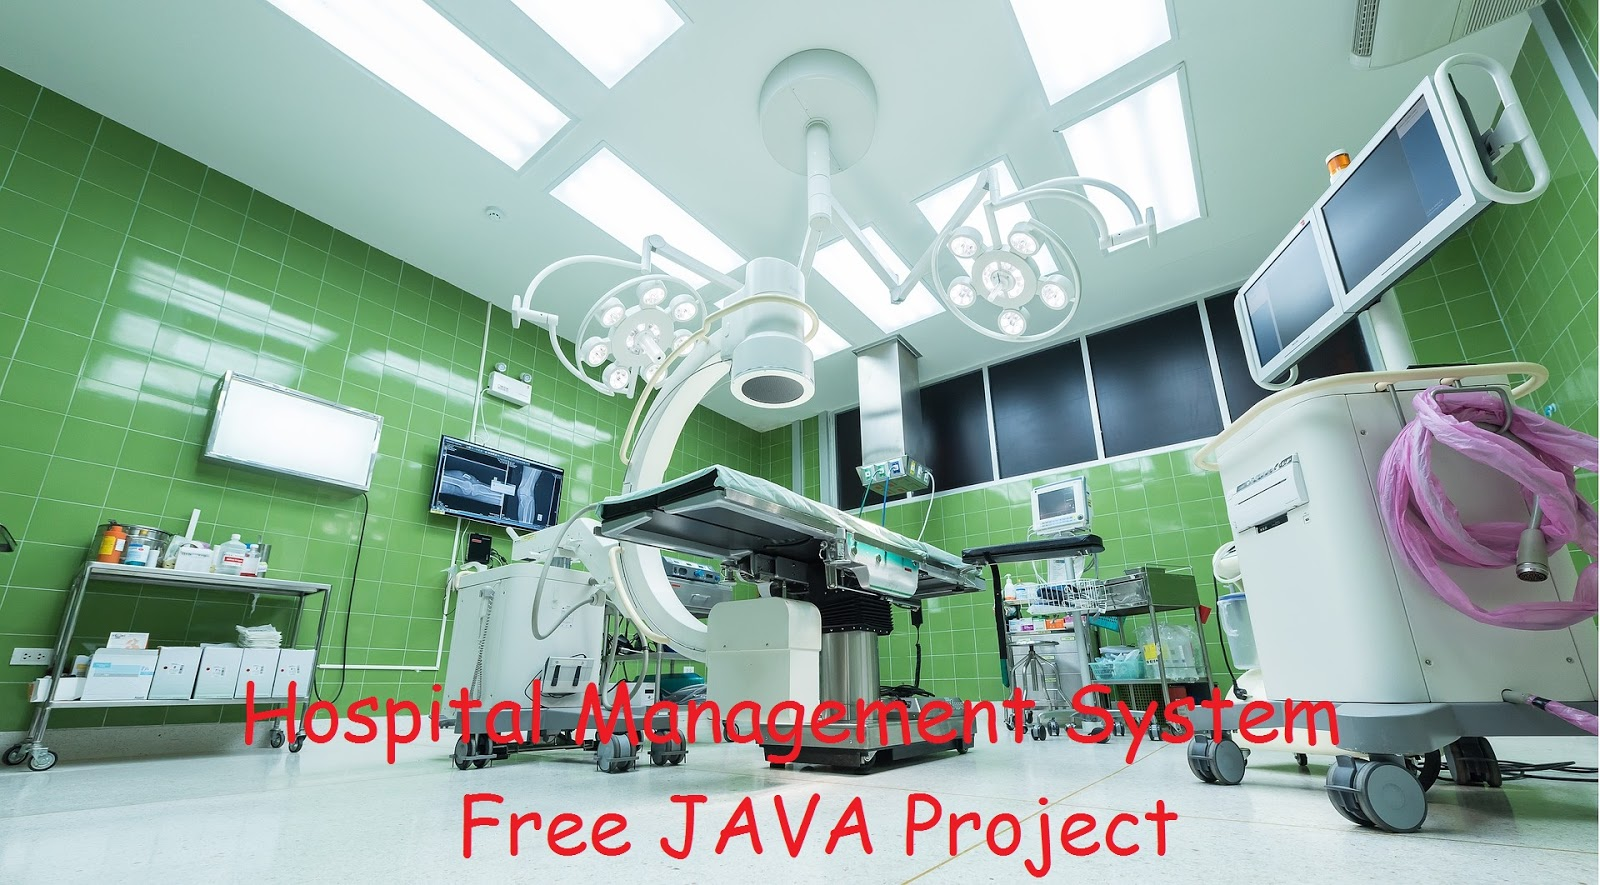 Hospital Management System Free JAVA Project - VTUPulse